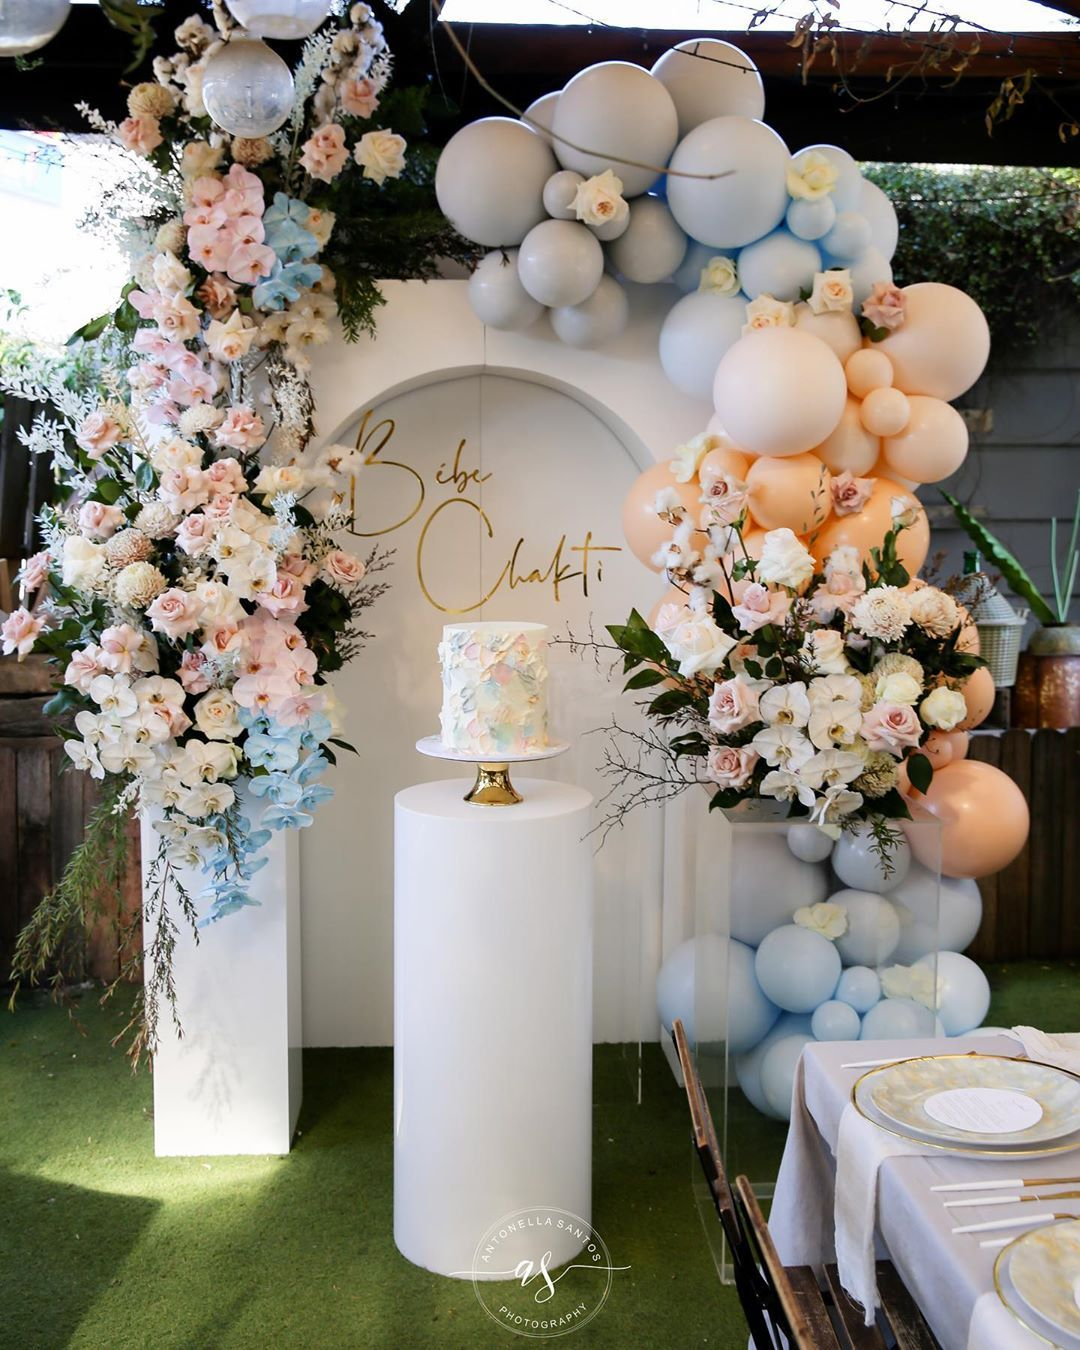 The Treasure Room Event Hire On Instagram A Beautiful Gender Neutral Baby Showe Flower Baby Shower Theme Baby Shower Balloon Arch Gender Reveal Decorations